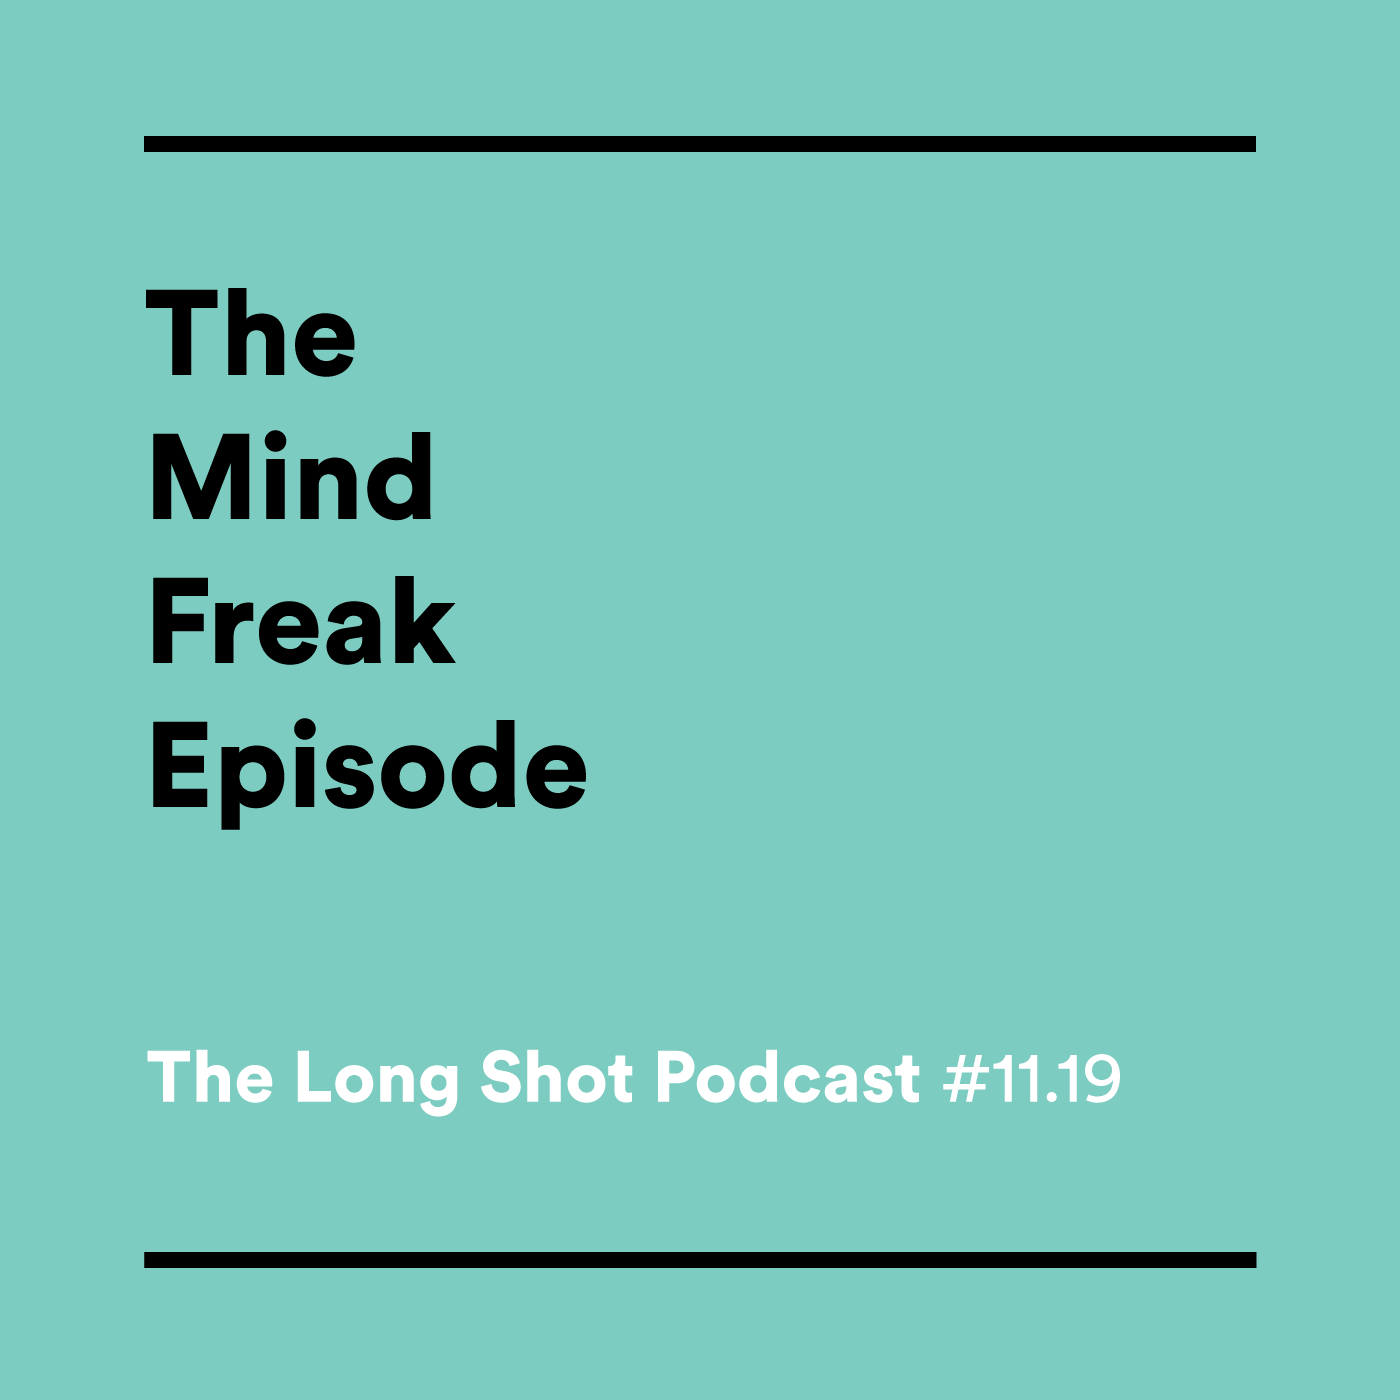 #11.19 The Mind Freak Episode